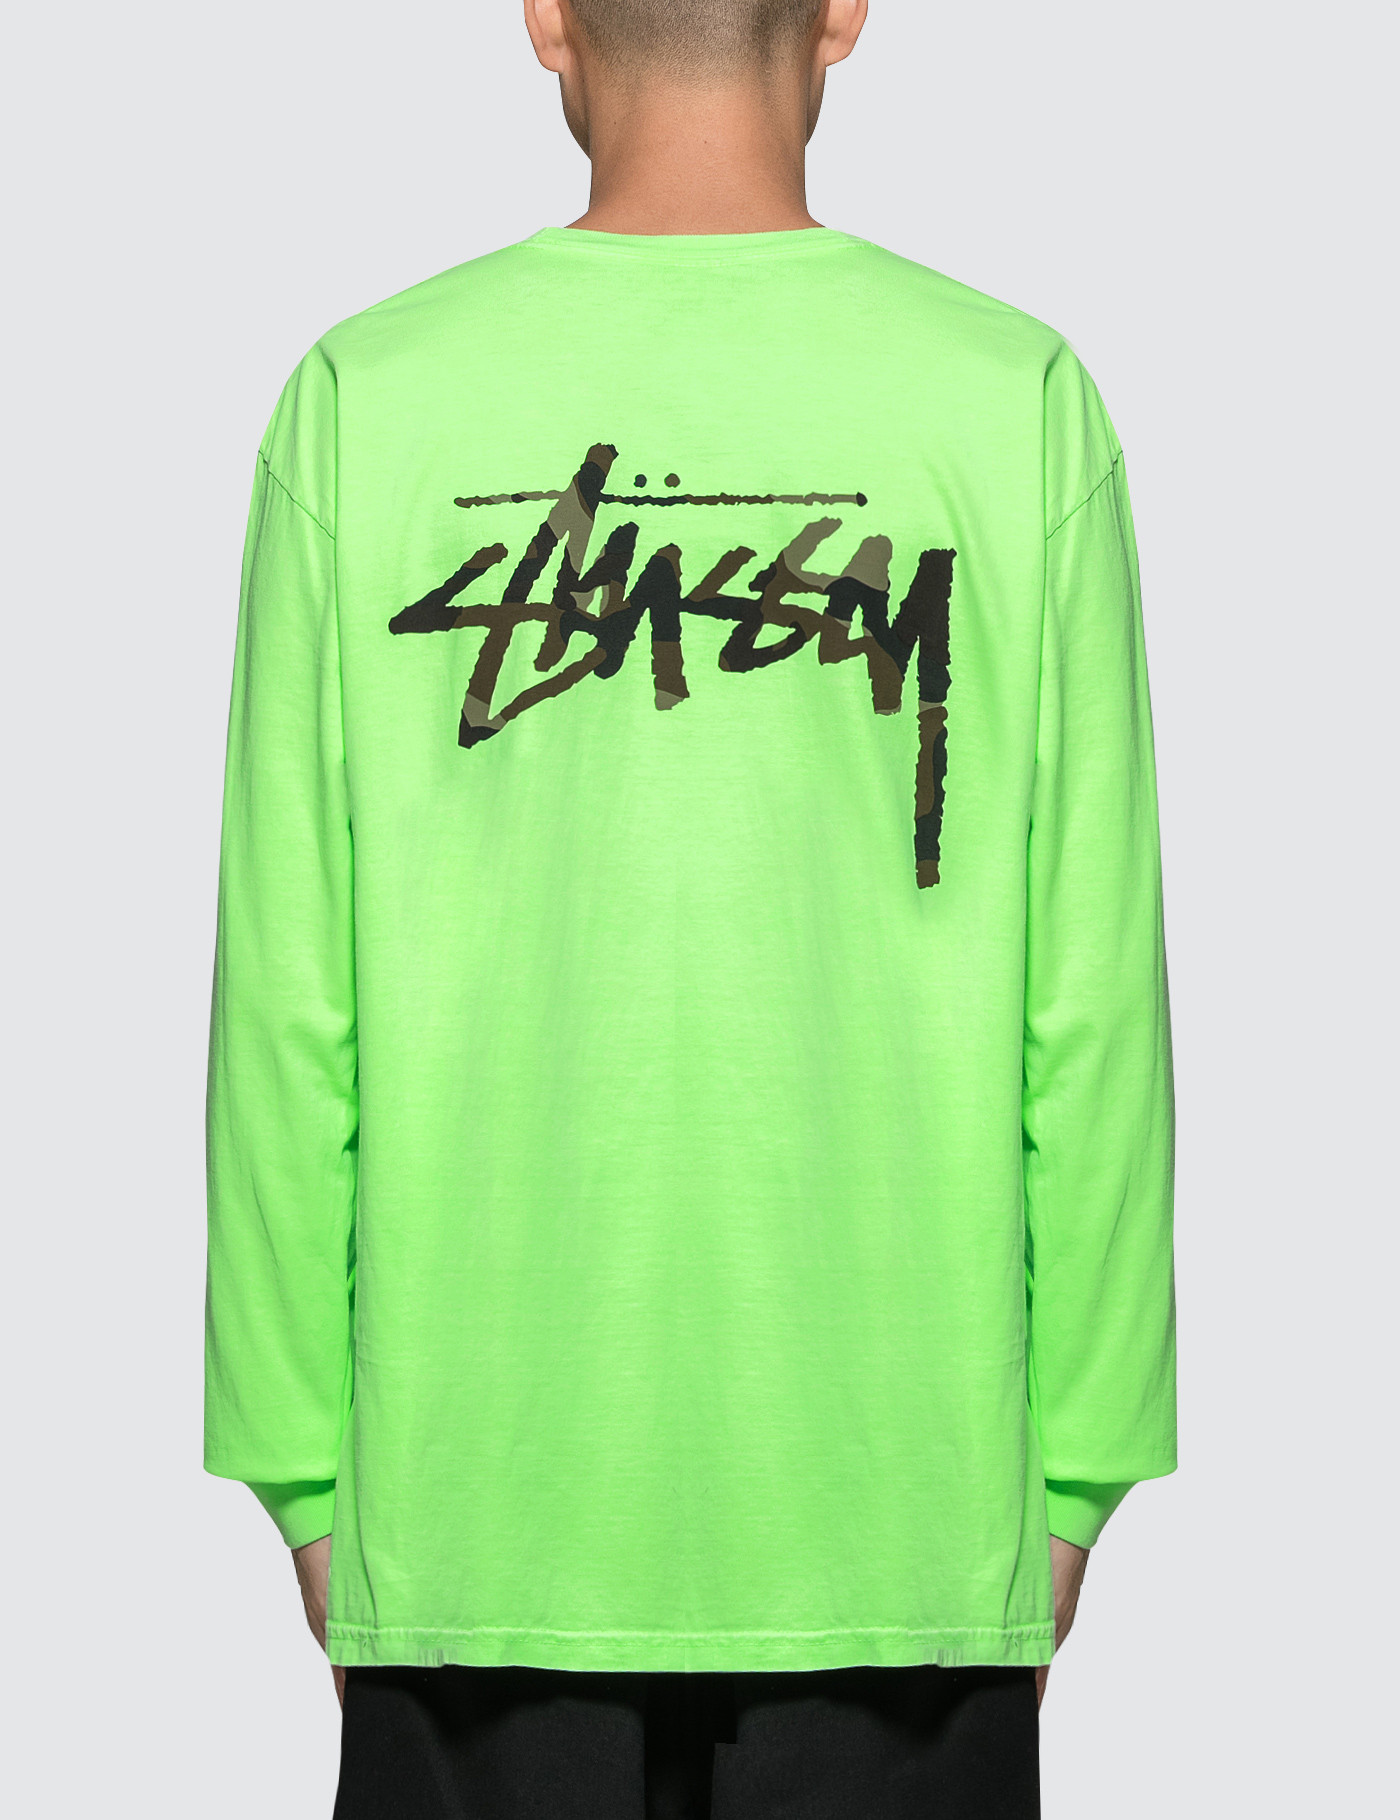 f93ab397 Buy Original Stussy Camo Stock Pig. Dyed Pkt L/S T-Shirt at ...